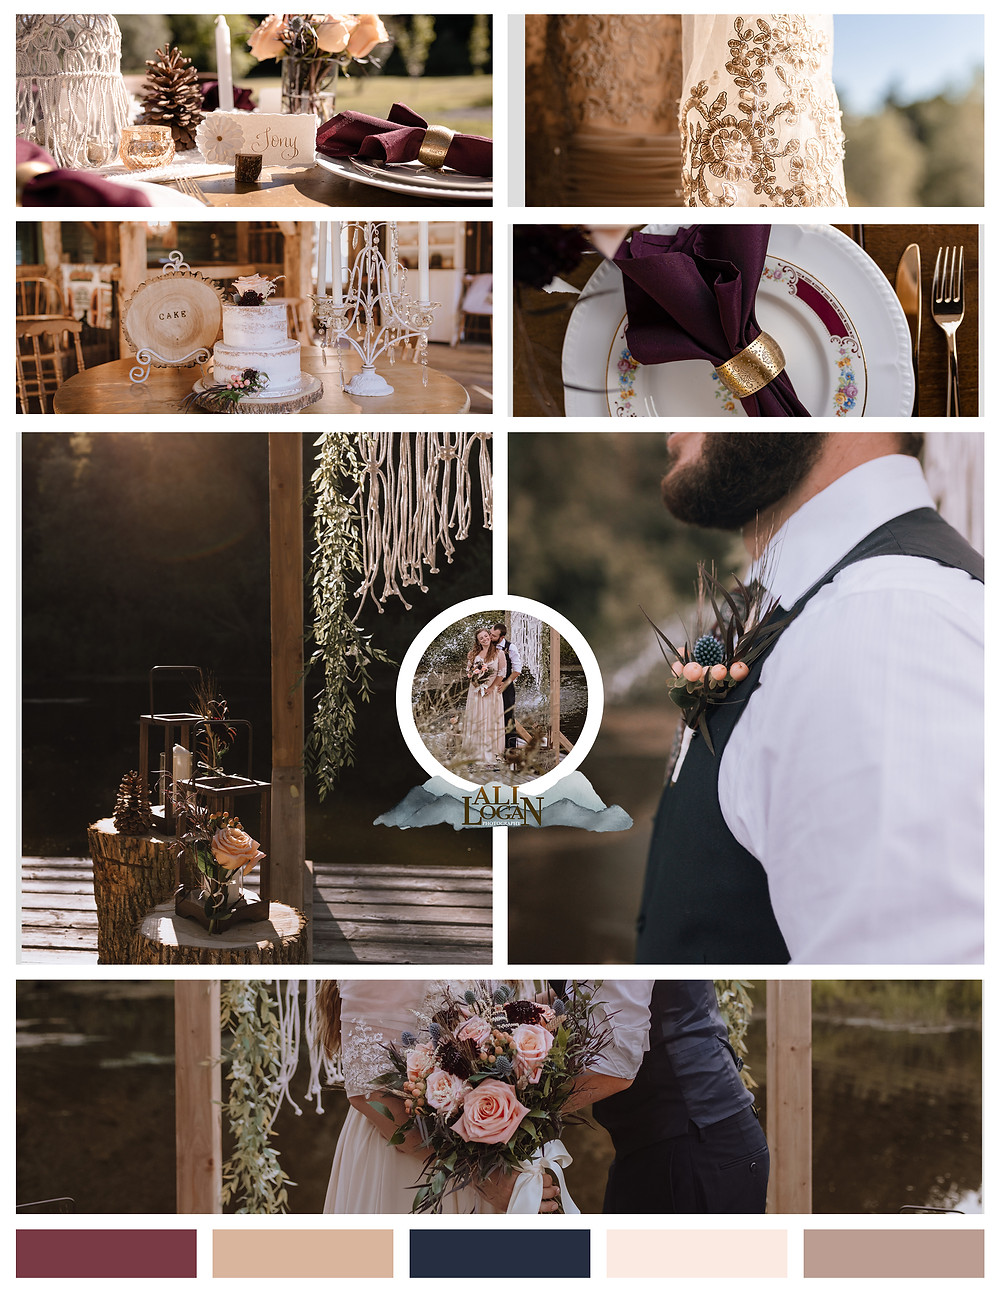 Mood Board Rustic Chic Maroon Blue Cream Elopement Rockport Barn Mallorytown Ontario Thousand Islands